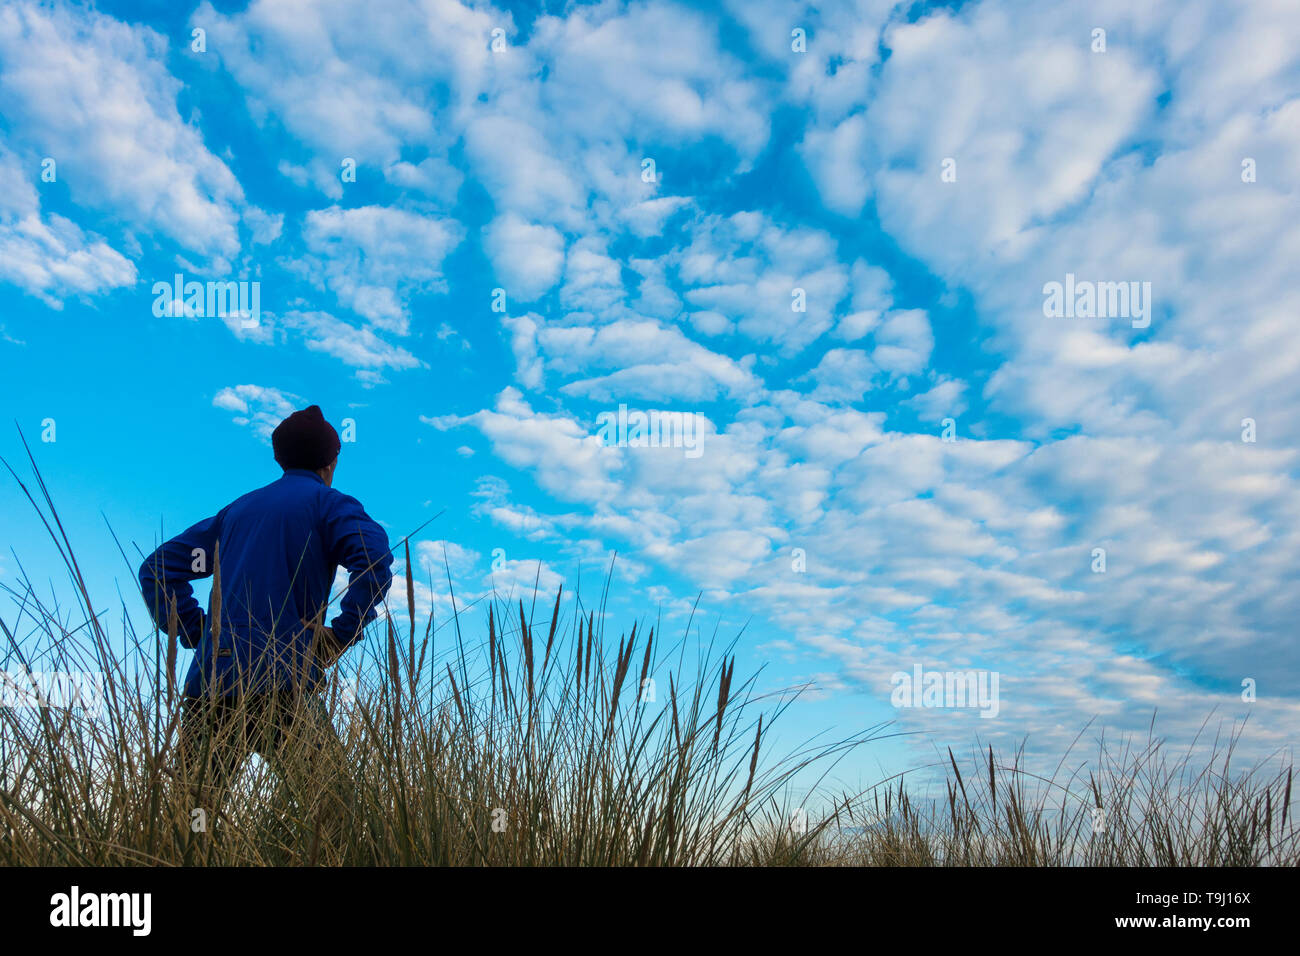 Seaton Carew, County Durham, UK. 19th May 2019. UK weather: a jogger looks out over the dunes as early morning sun burns off a thin layer of cloud on a glorious Sunday morning at Seaton Carew on the north east coast of England. Credit: Alan Dawson/Alamy Live News Stock Photo